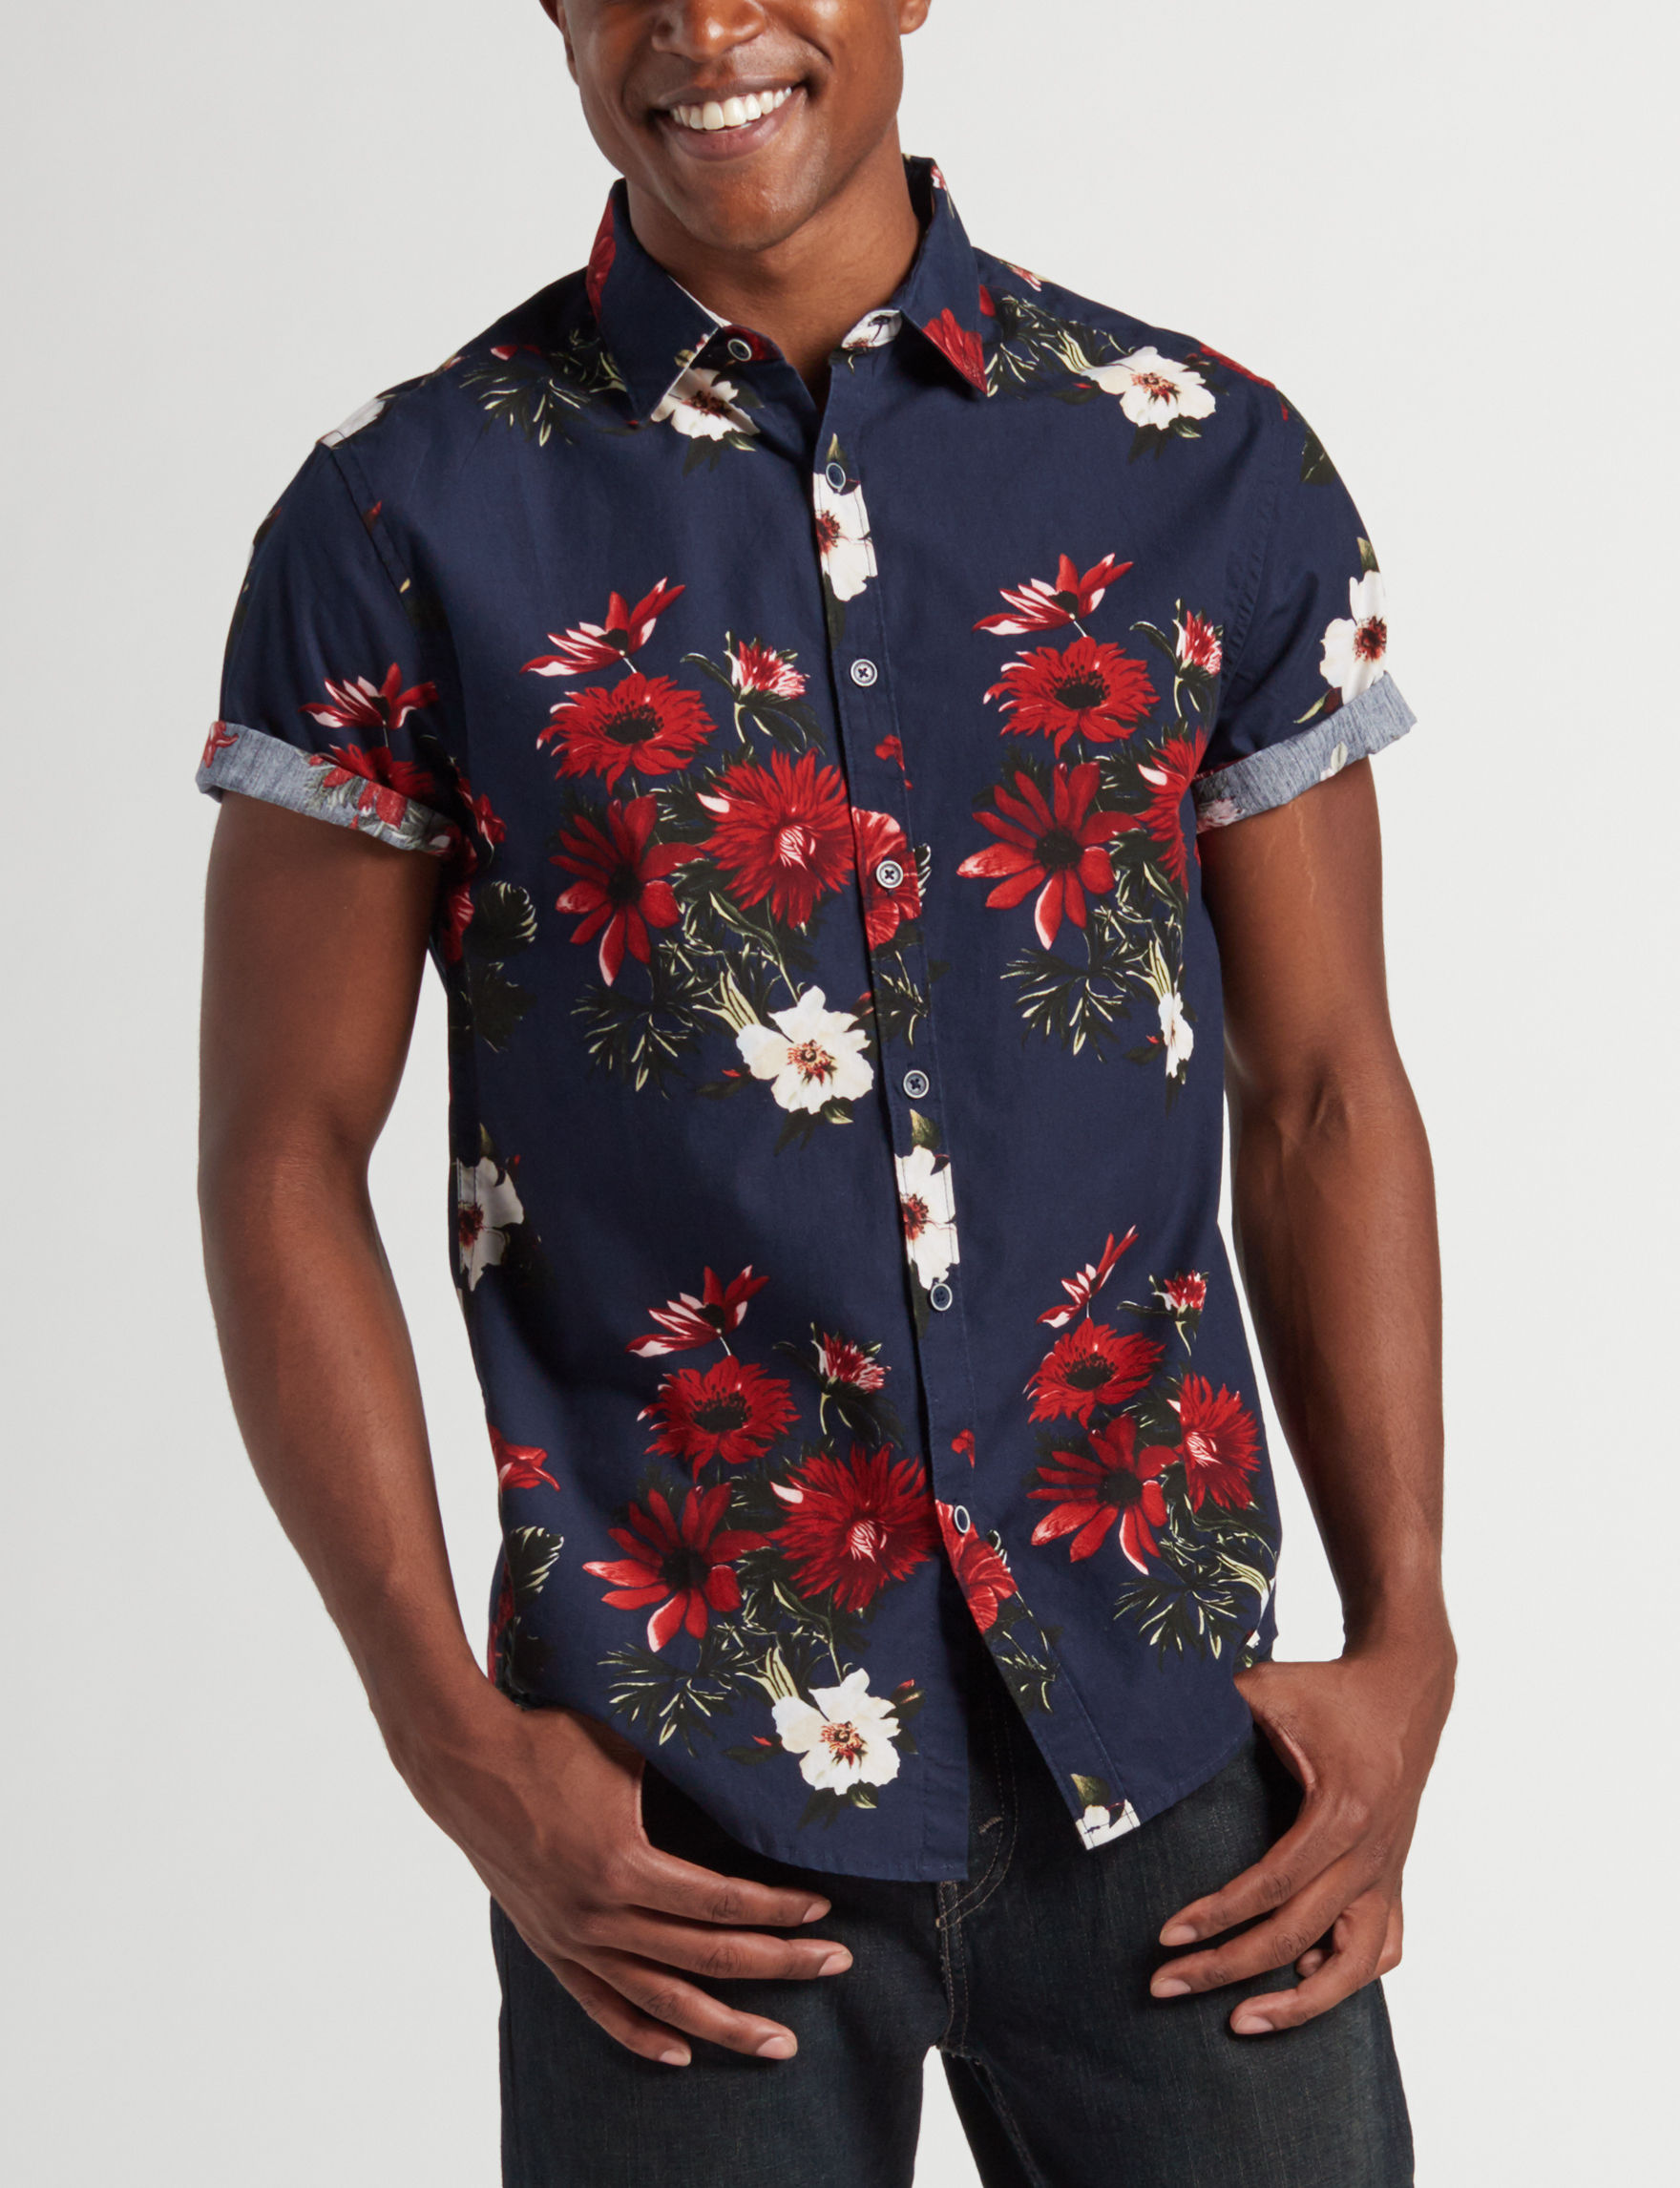 Cactus Man Navy Floral Casual Button Down Shirts